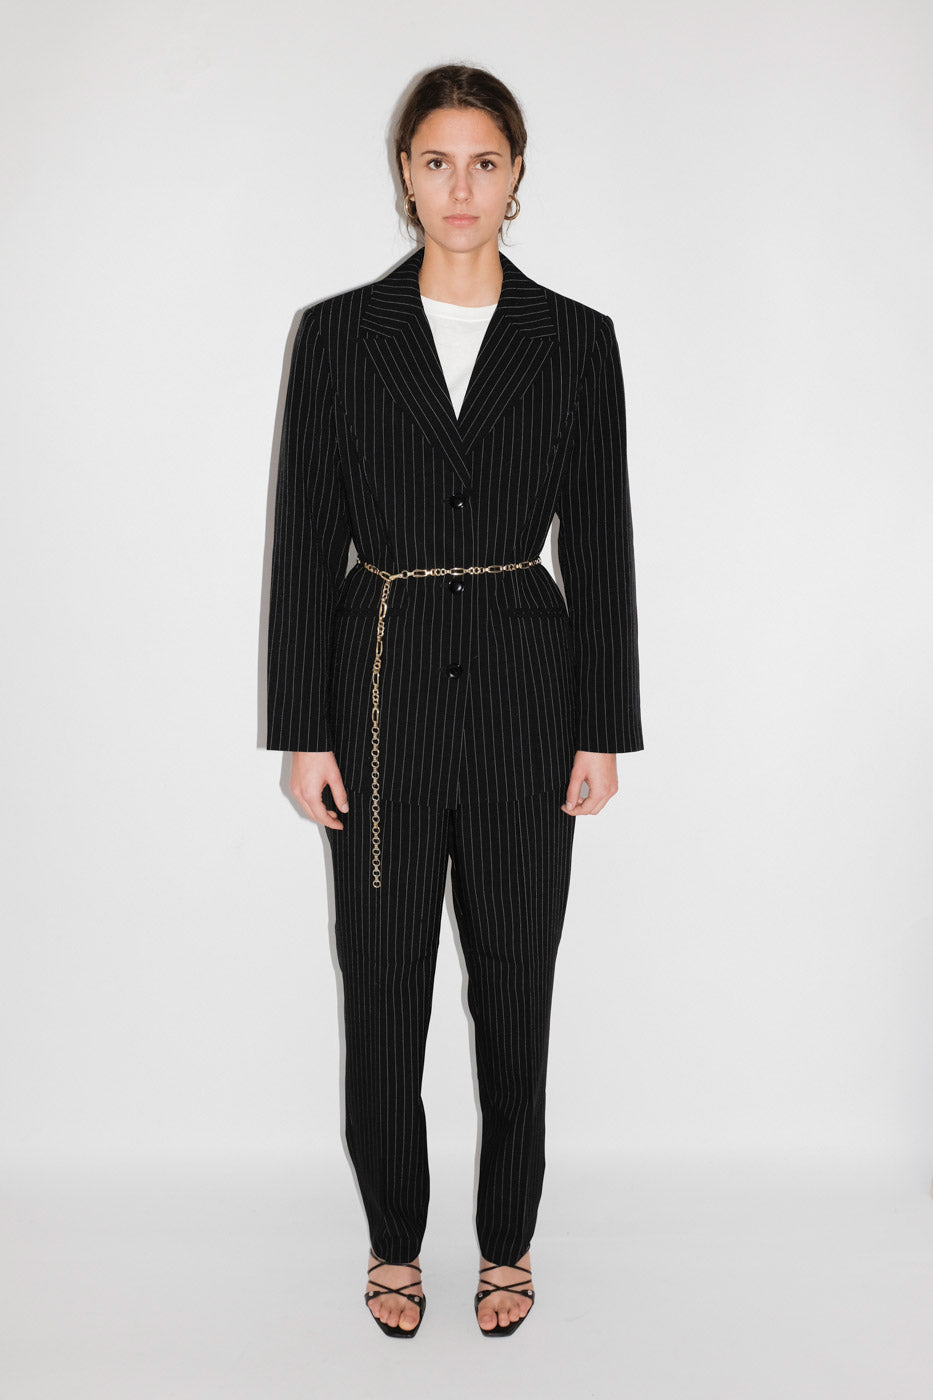 0009_PINSTRIPE BLACK SUIT